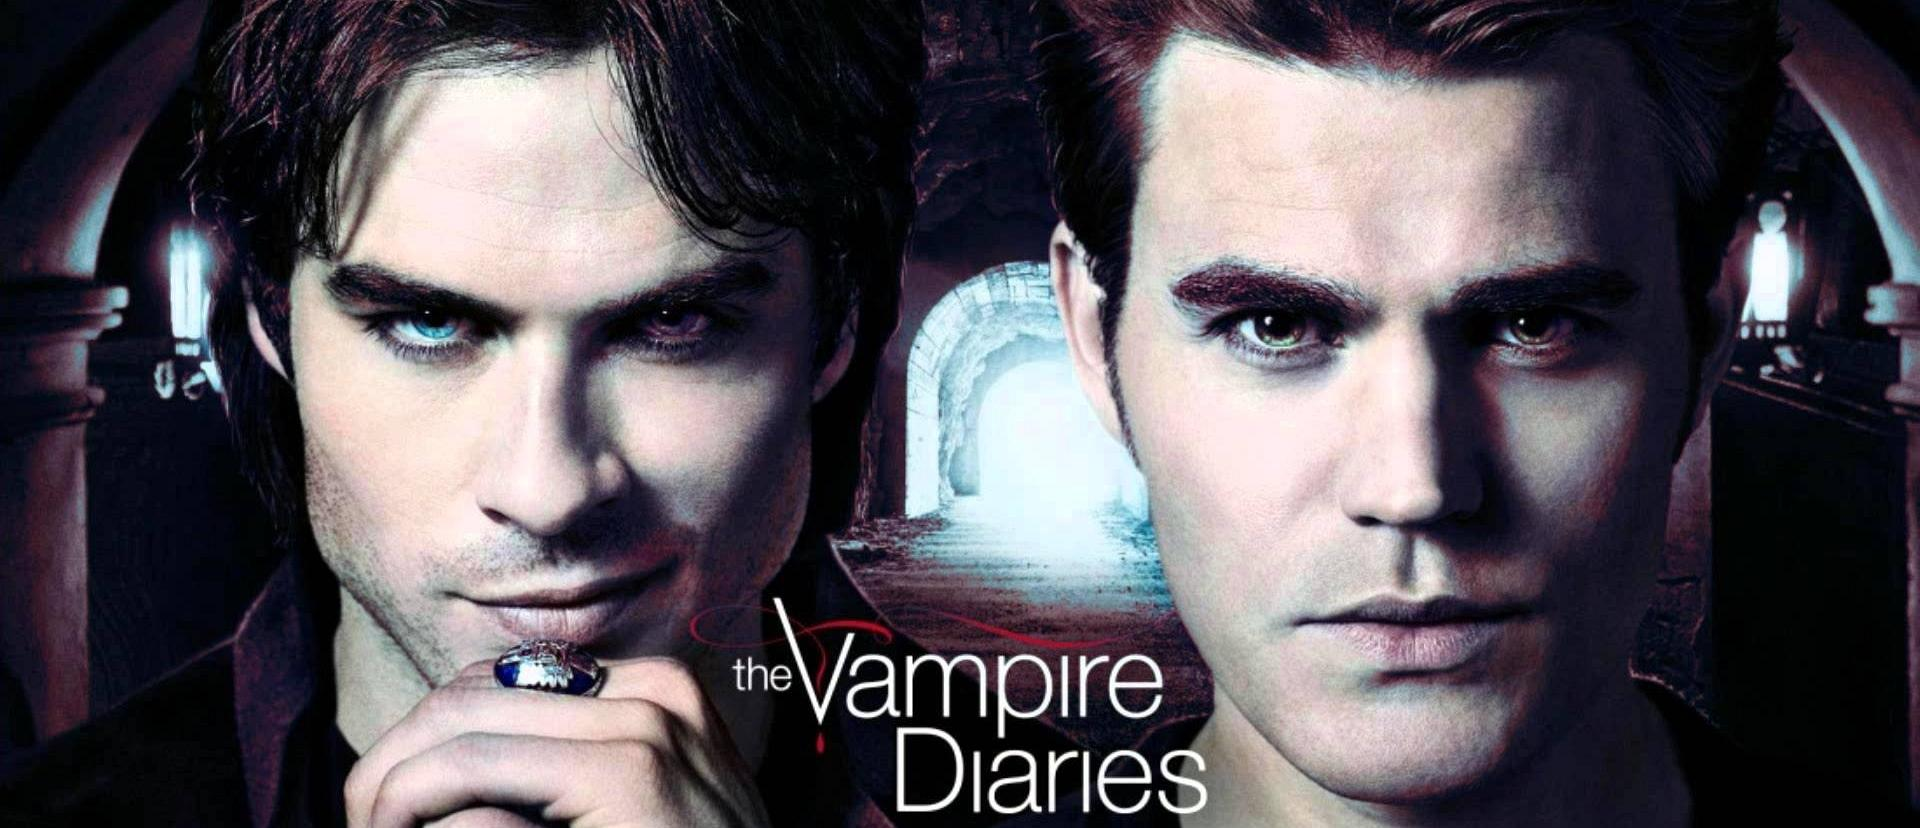 The Vampire Diaries 7. évad